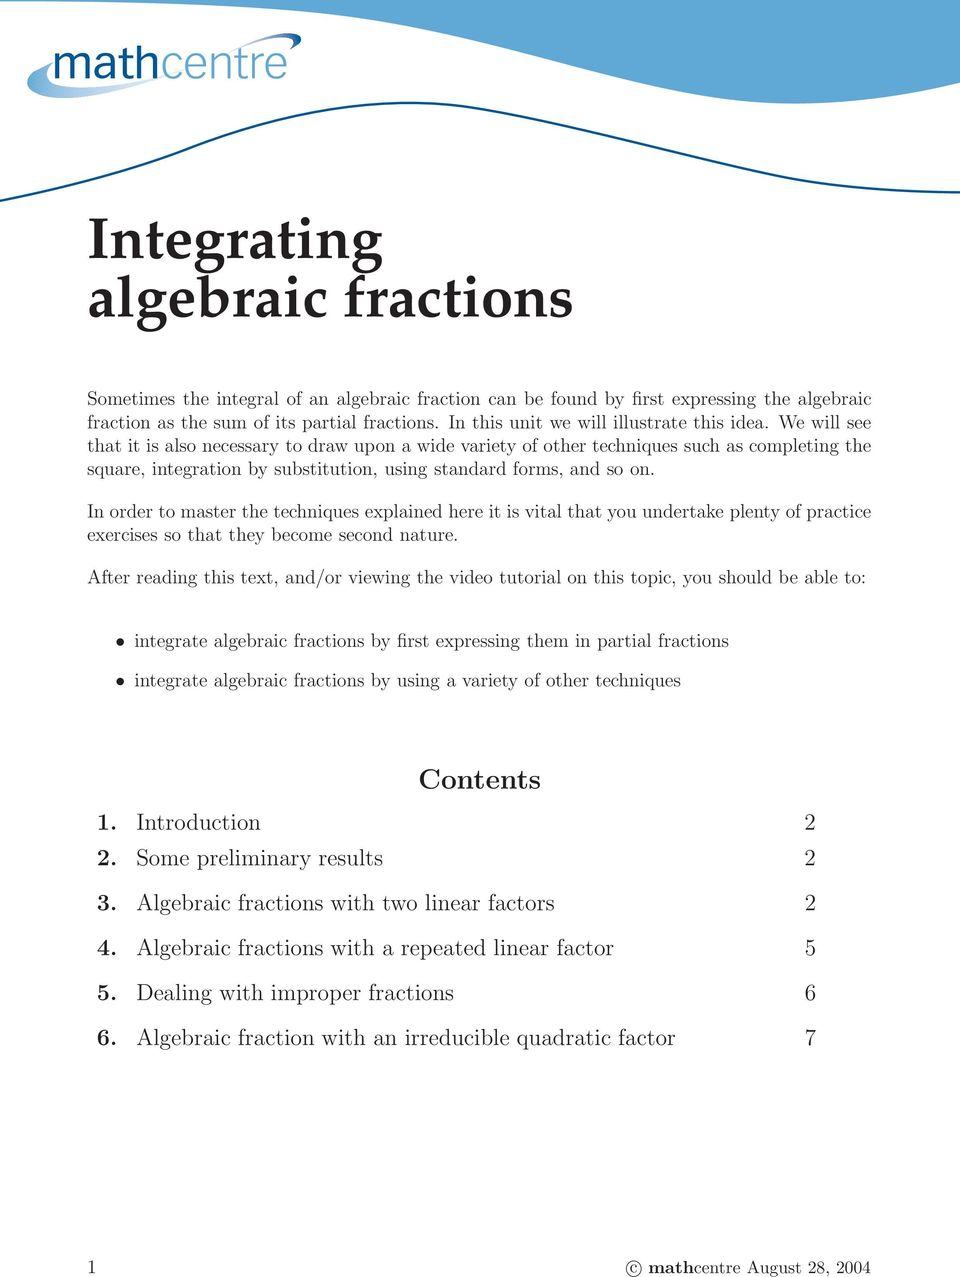 We will see that it is also necessary to draw upon a wide variety of other techniques such as completing the square, integration by substitution, using standard forms, and so on.